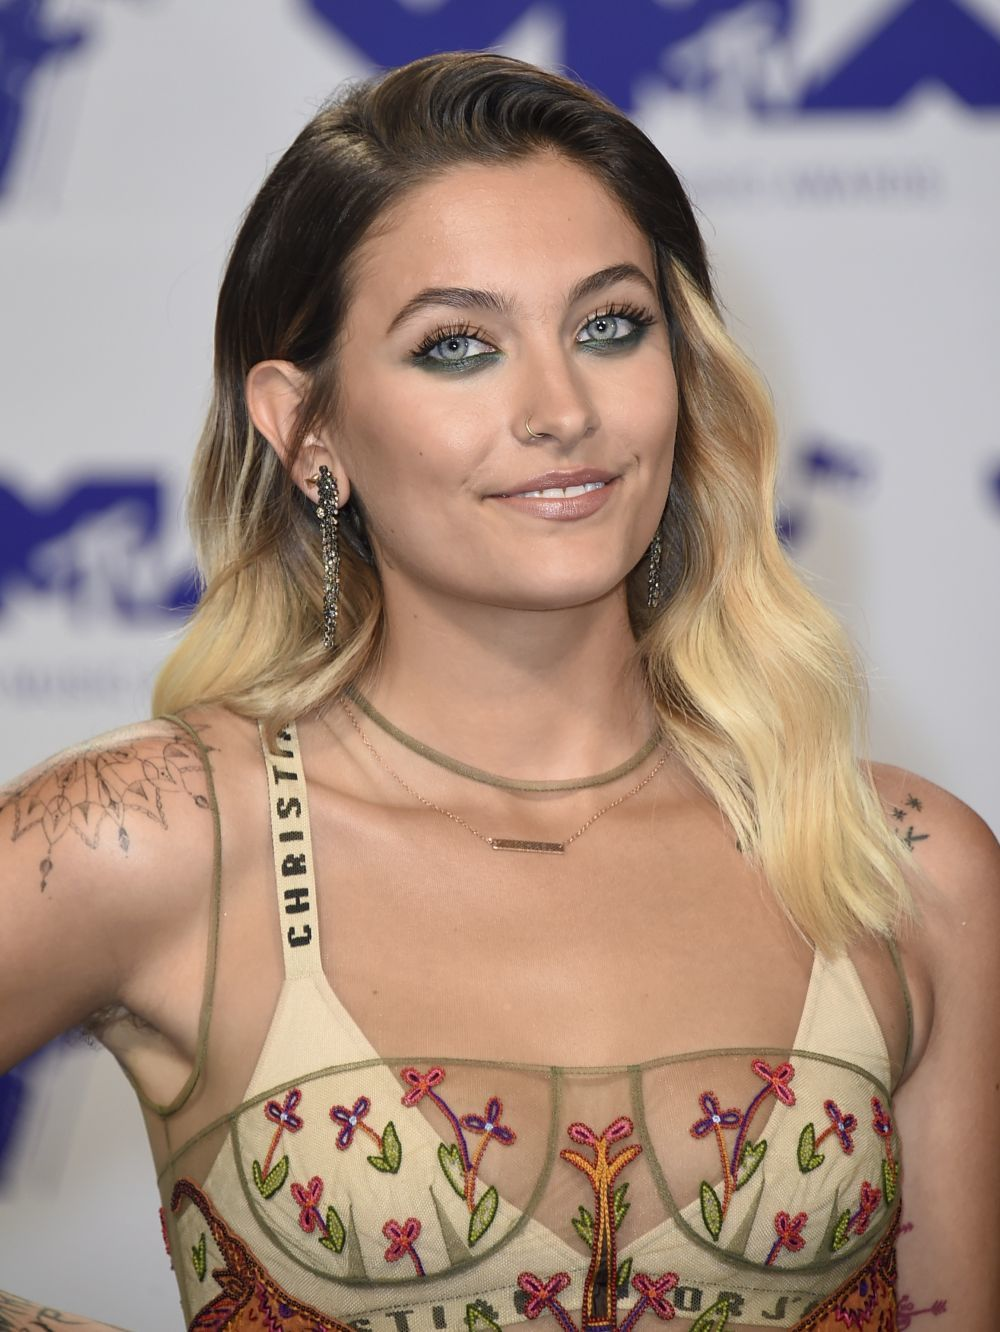 Paris Jackson acude sin depilar a los Premios Video Music Award MTV